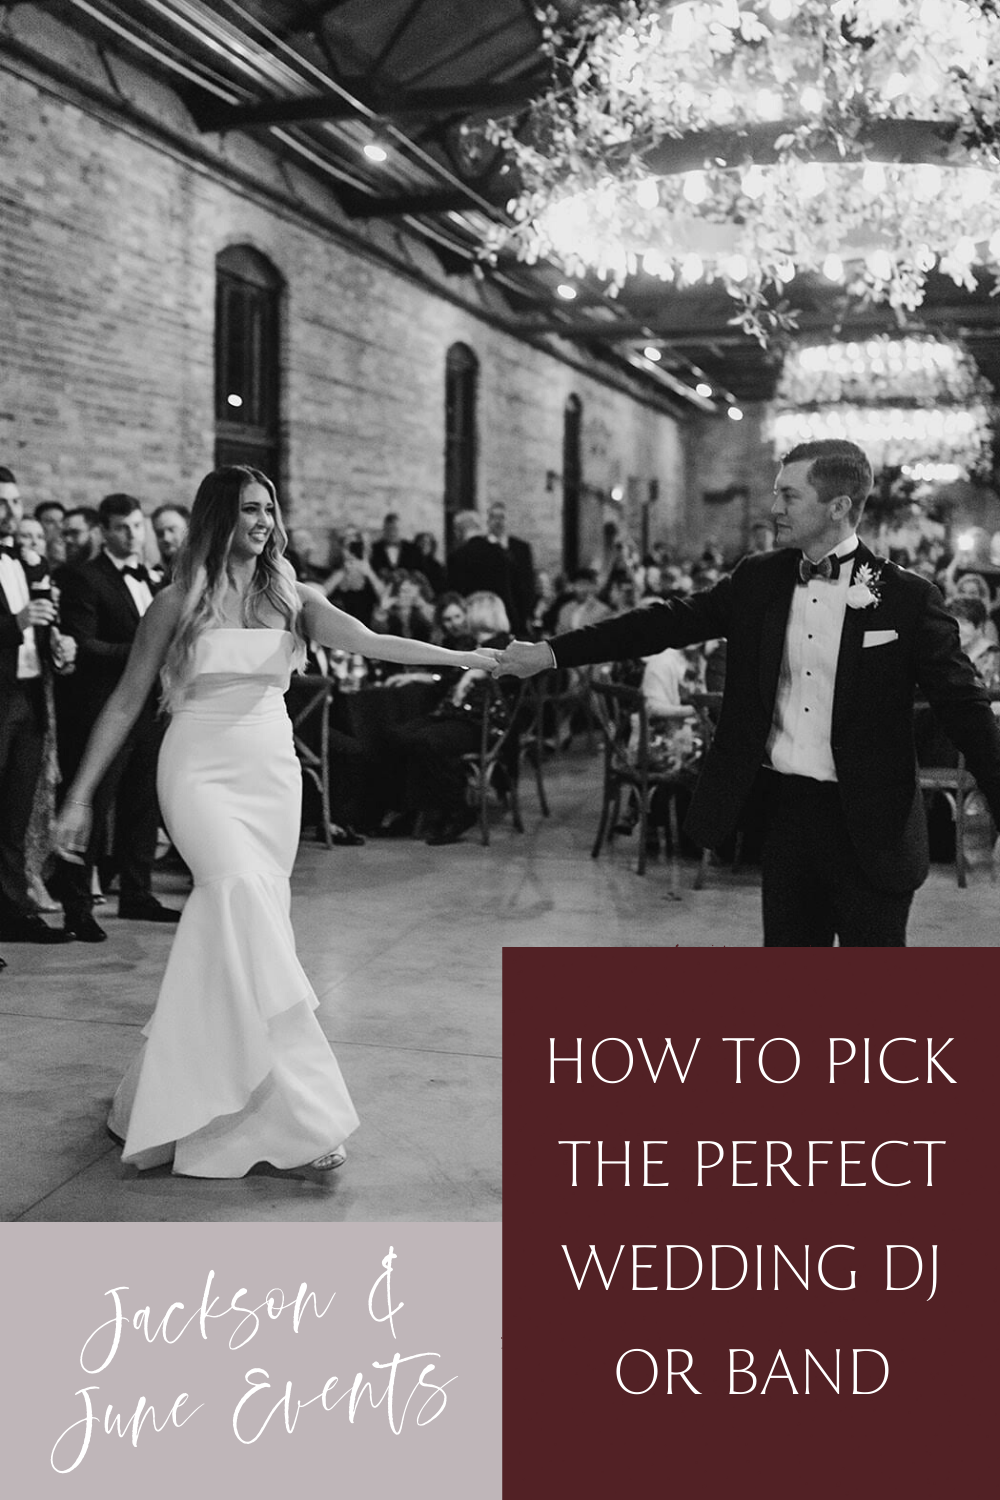 How To Pick The Perfect Wedding Dj Or Band In 2020 Wedding Reception Music Wedding Dj Funny Wedding Photos